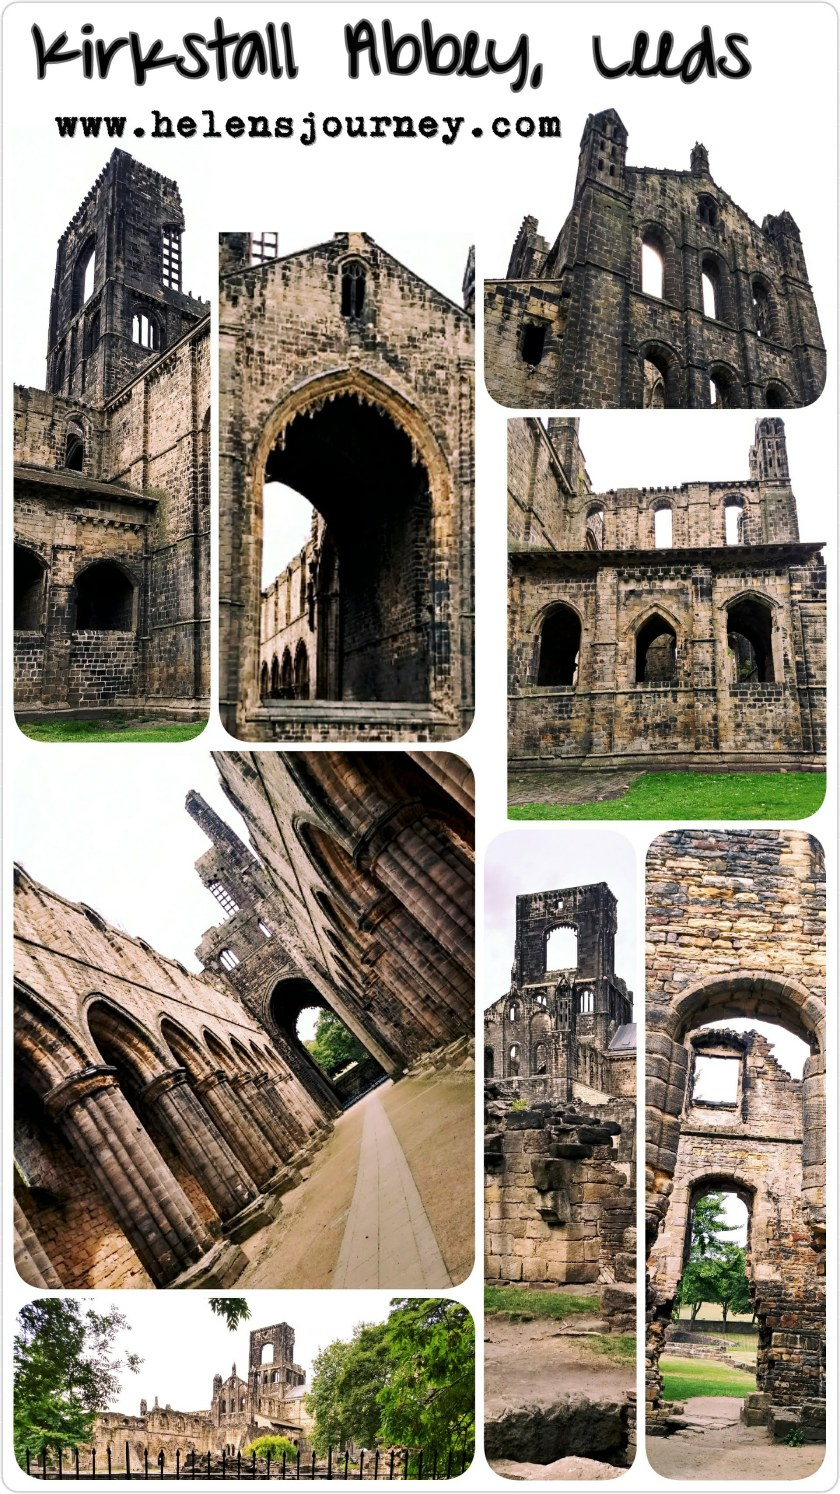 Kirkstall Abbey in Leeds, a beauty spot full of history - review by Helen's Journey Blog www.helensjourney.com